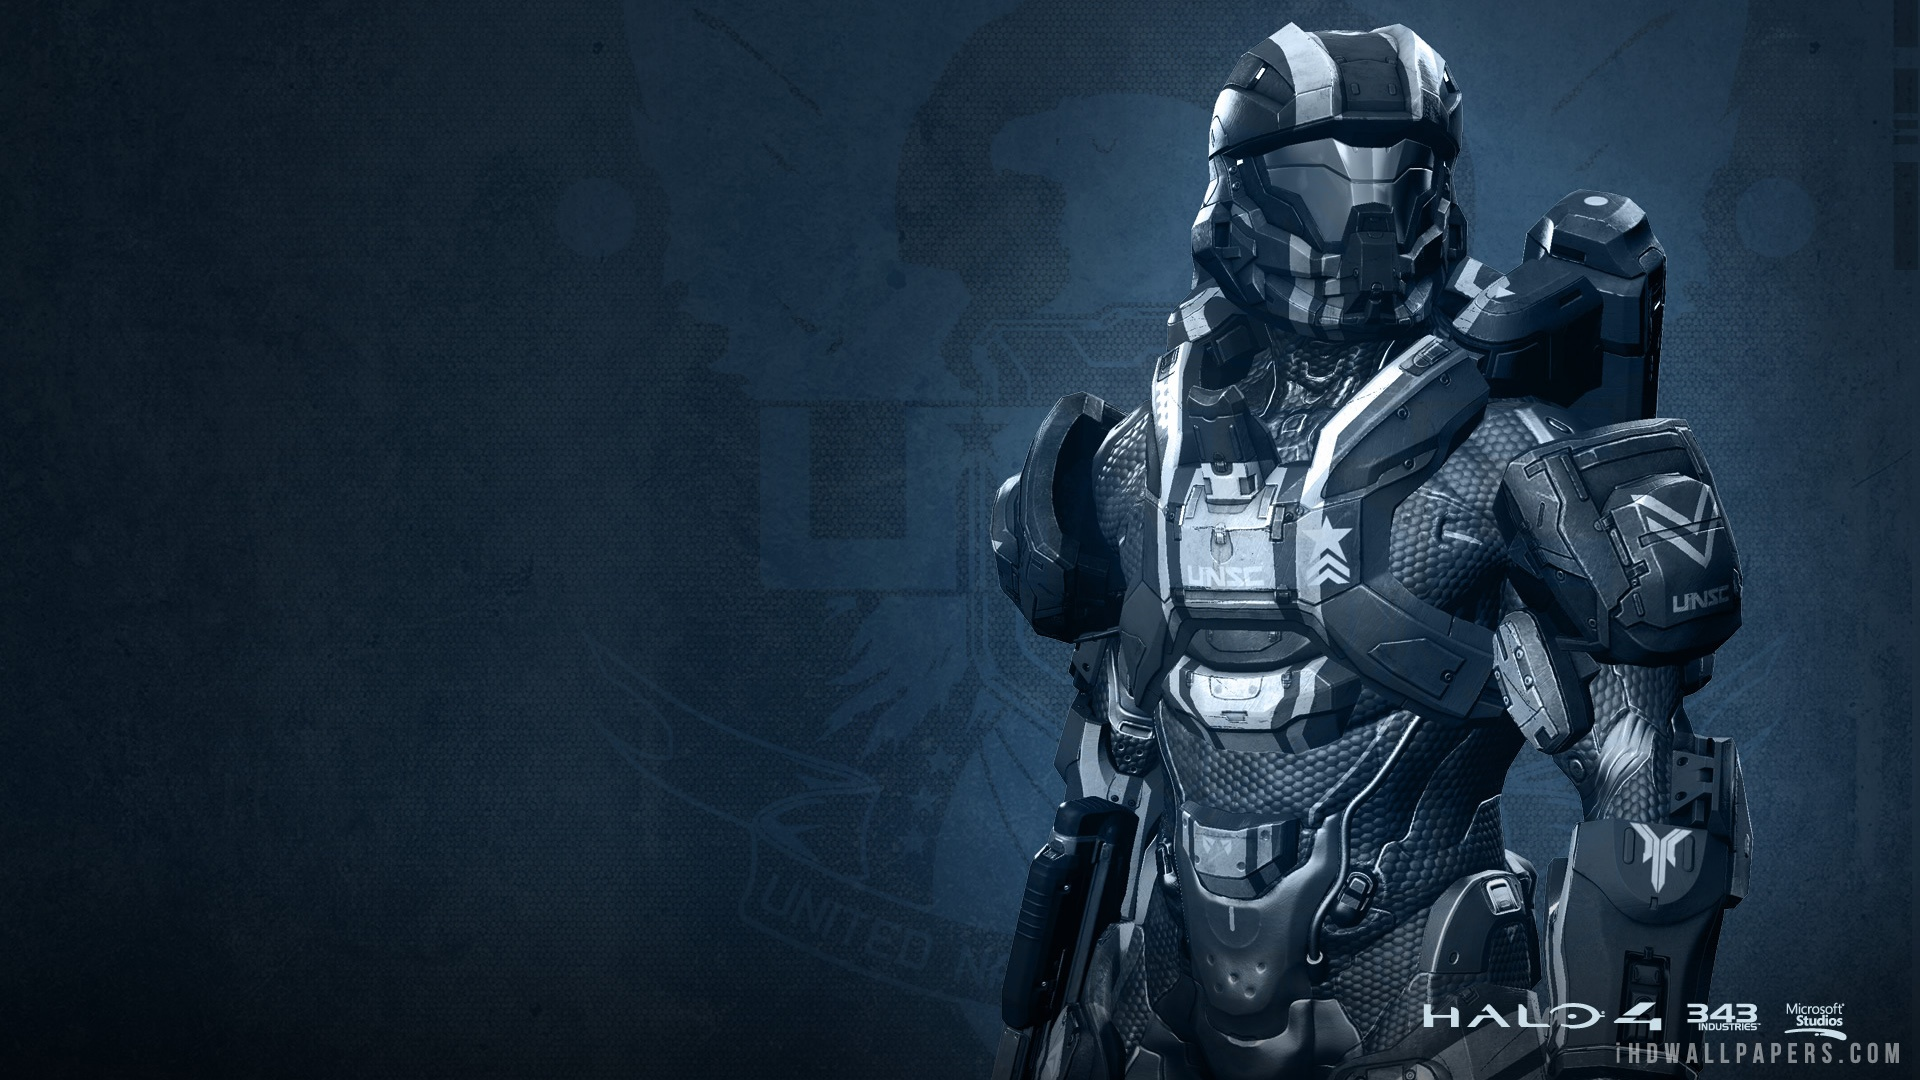 Halo 5 HD Wallpapers Download 1920x1080